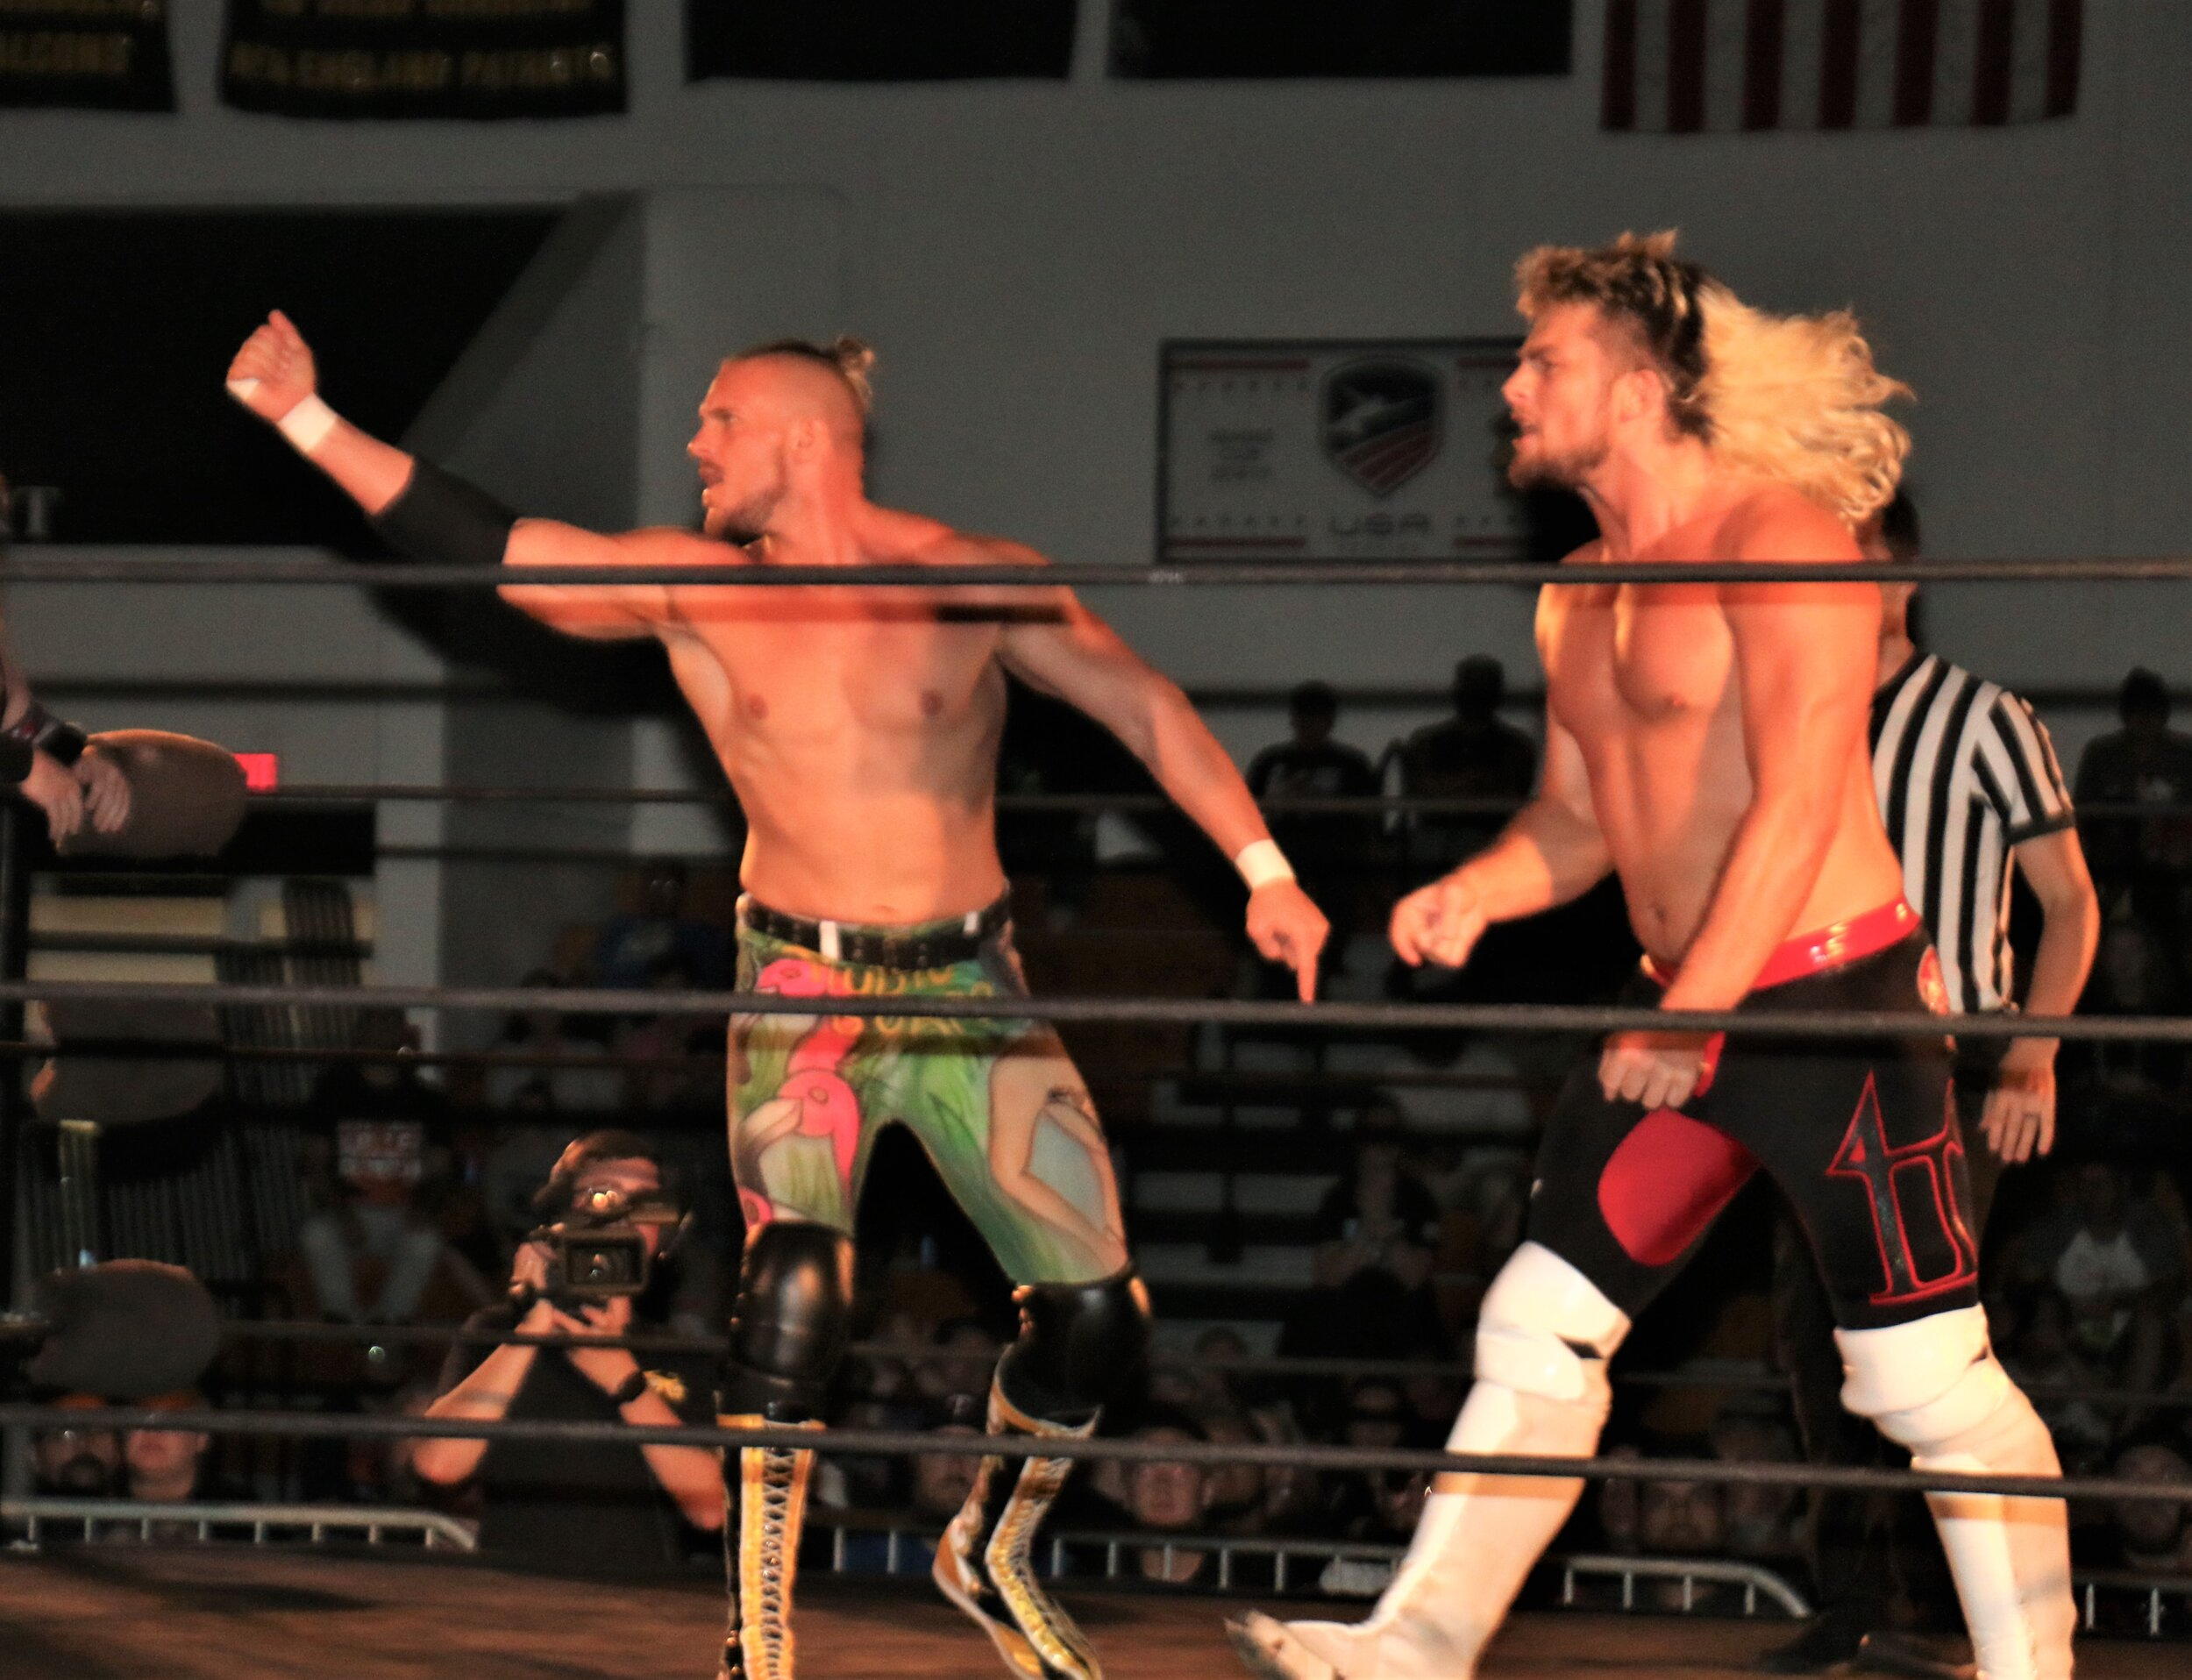 Sam Adonis, left, and Brian Pillman Jr., get ready to square off.